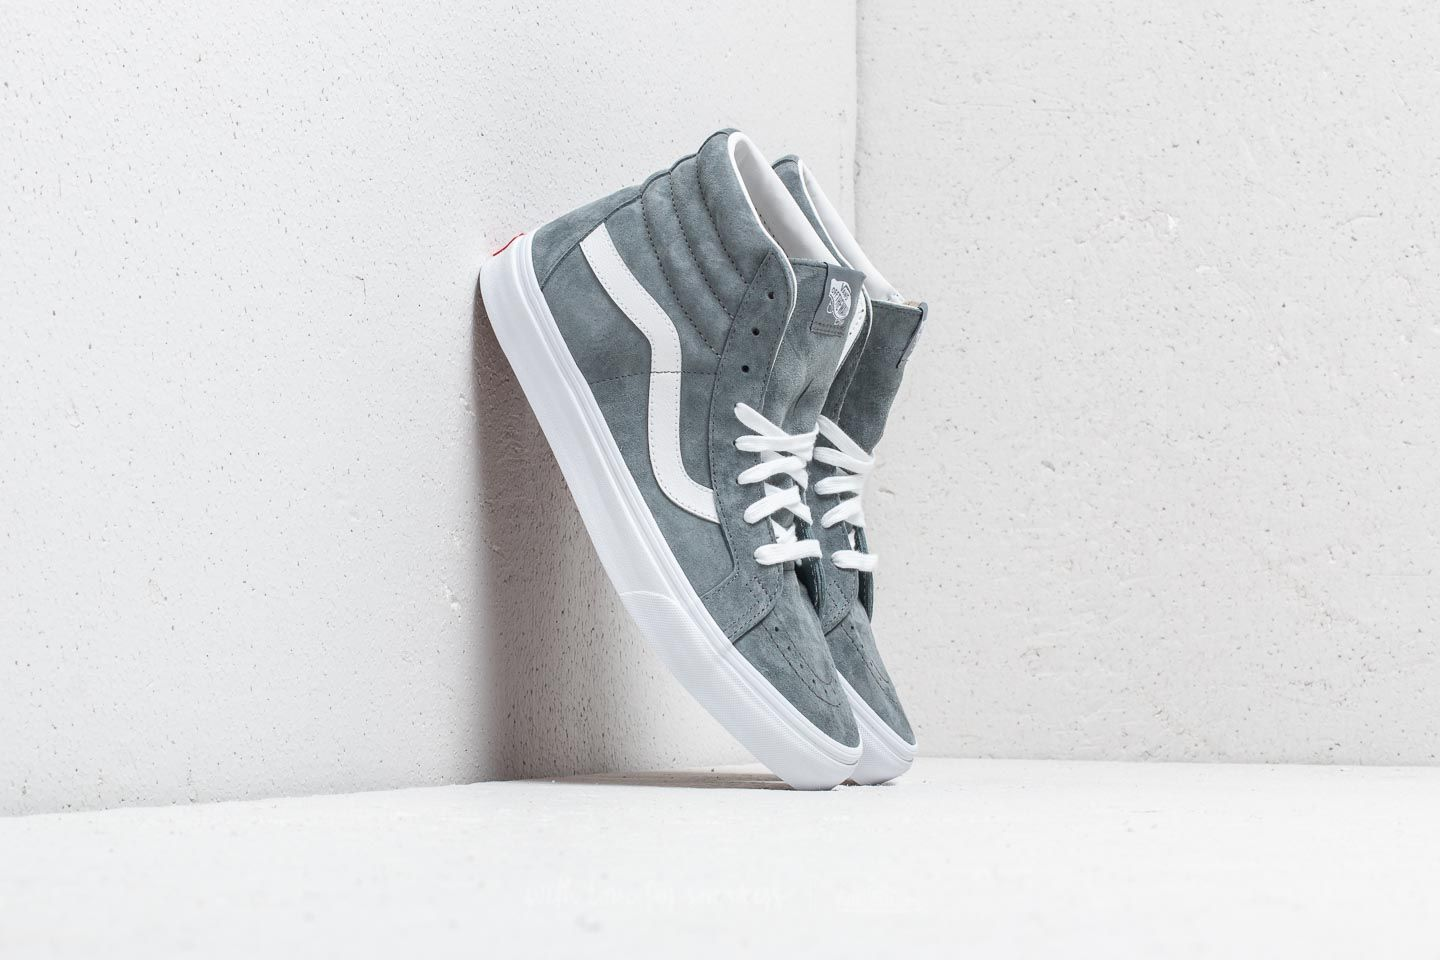 Vans Sk8-Hi Reissue (Pig Suede) Stormy Weather  787e9751c5